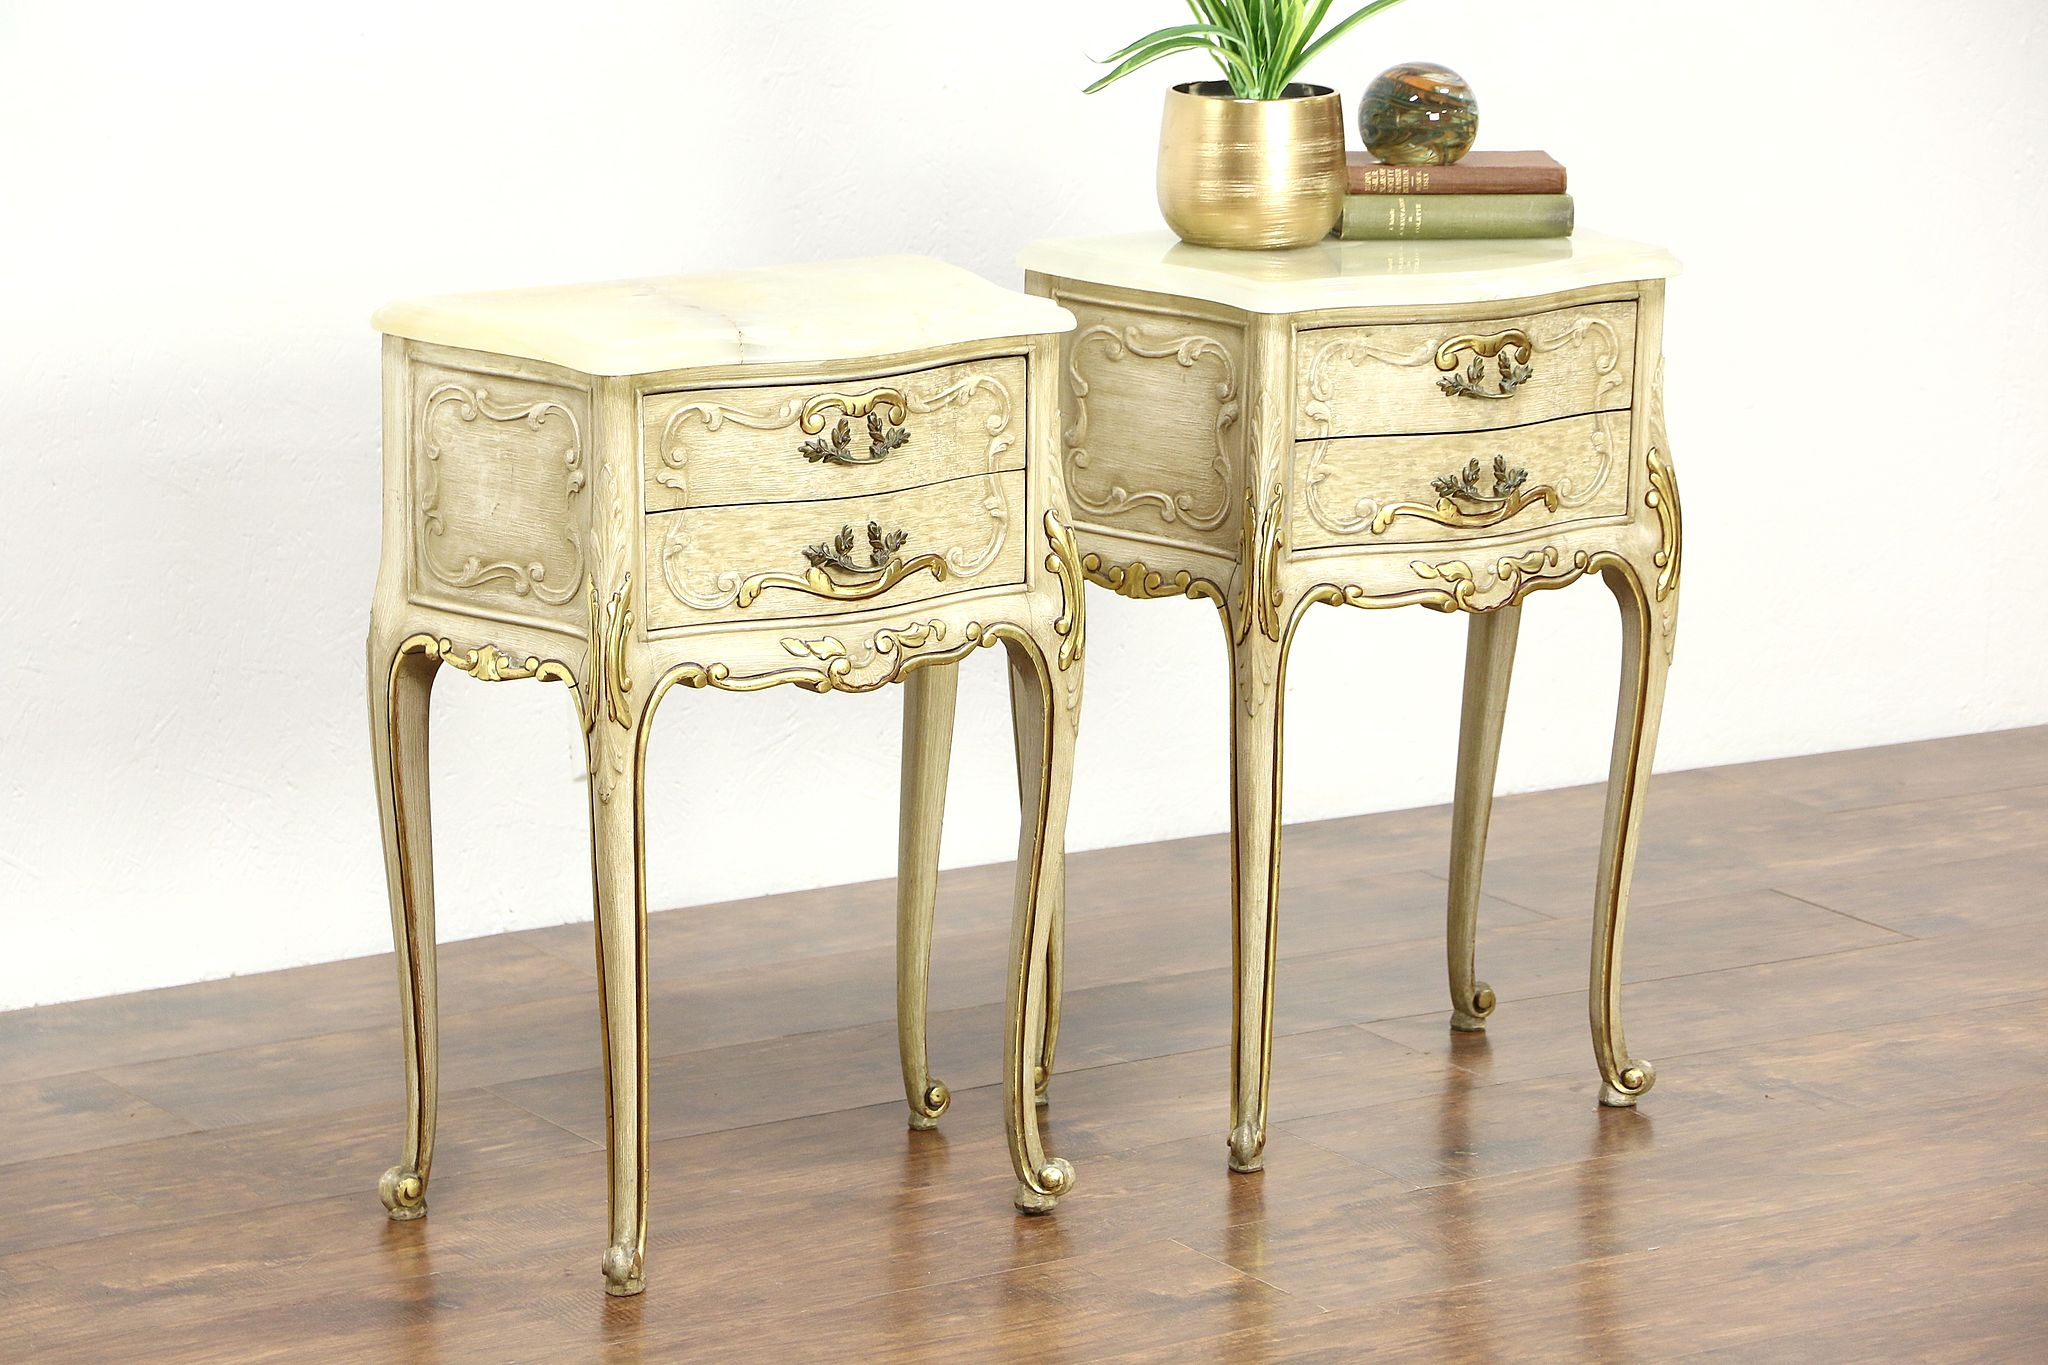 Sold Pair Italian Hand Painted Vintage Nightstands Or End Tables Onyx Tops Harp Gallery Antiques Furniture